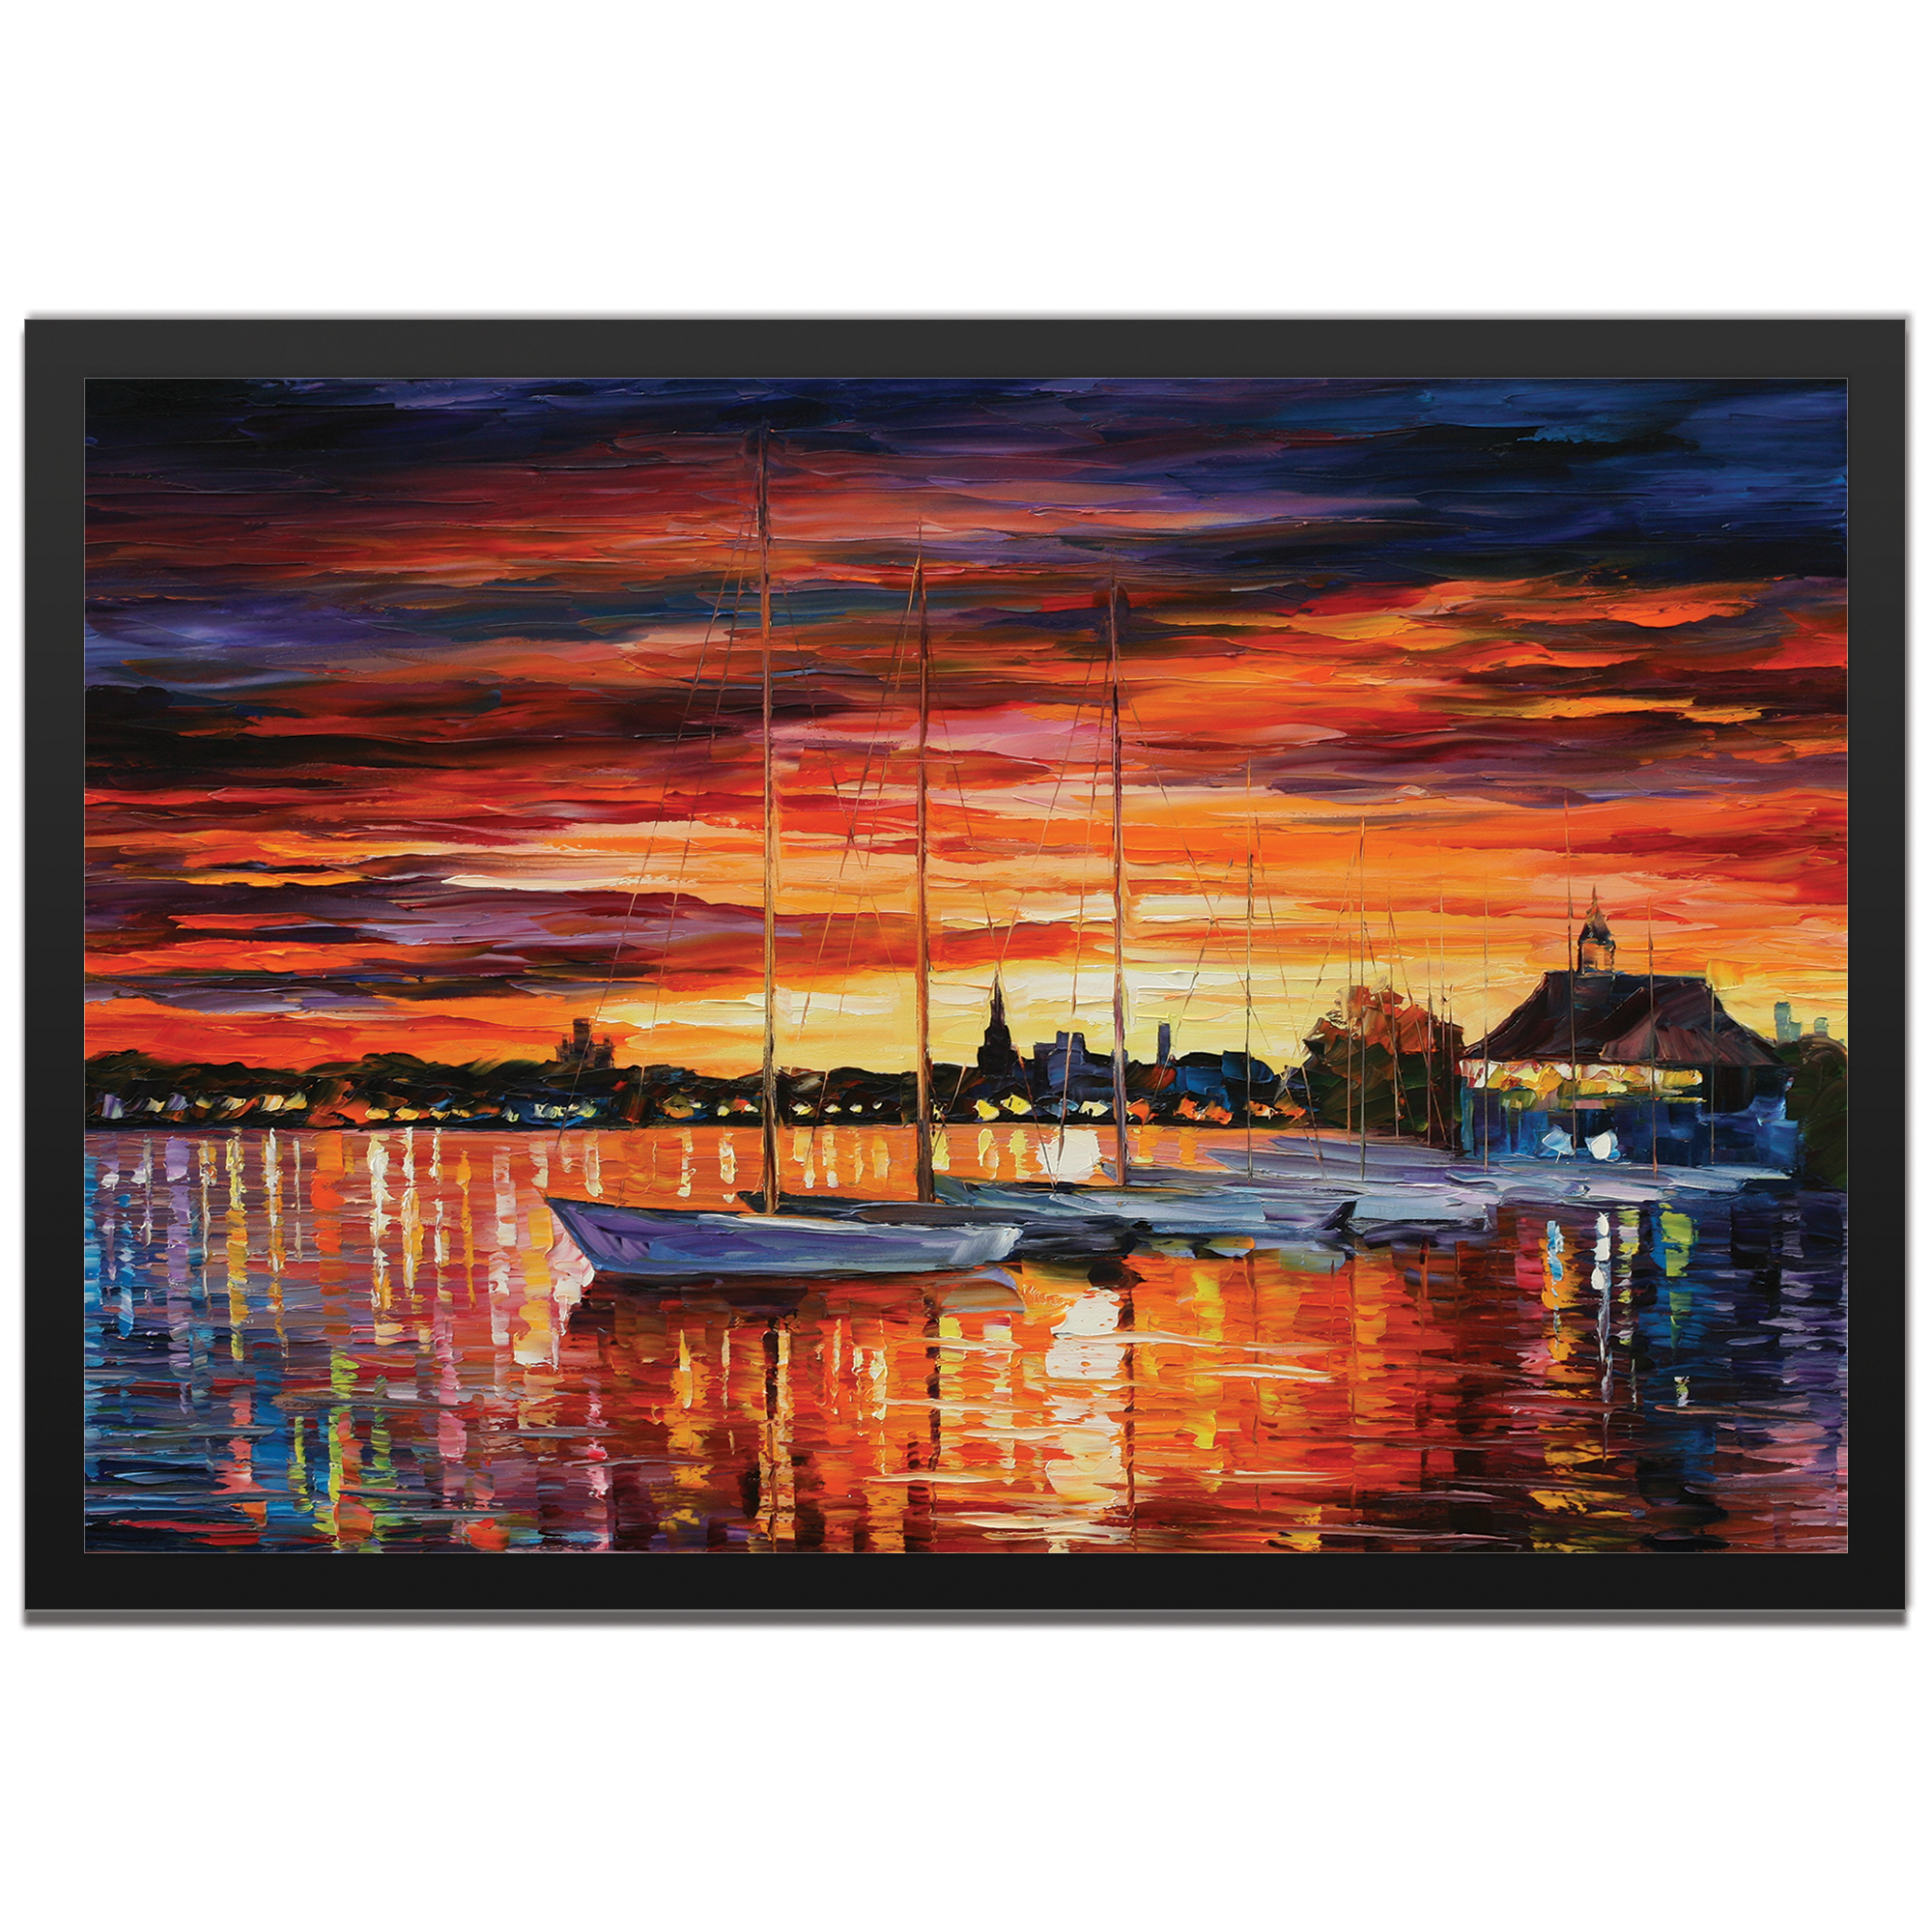 Leonid Afremov 'Helsinki Sailboats at Yacht Club Framed' 32in x 22in Landscape Photography Sunset Art on Colored Metal